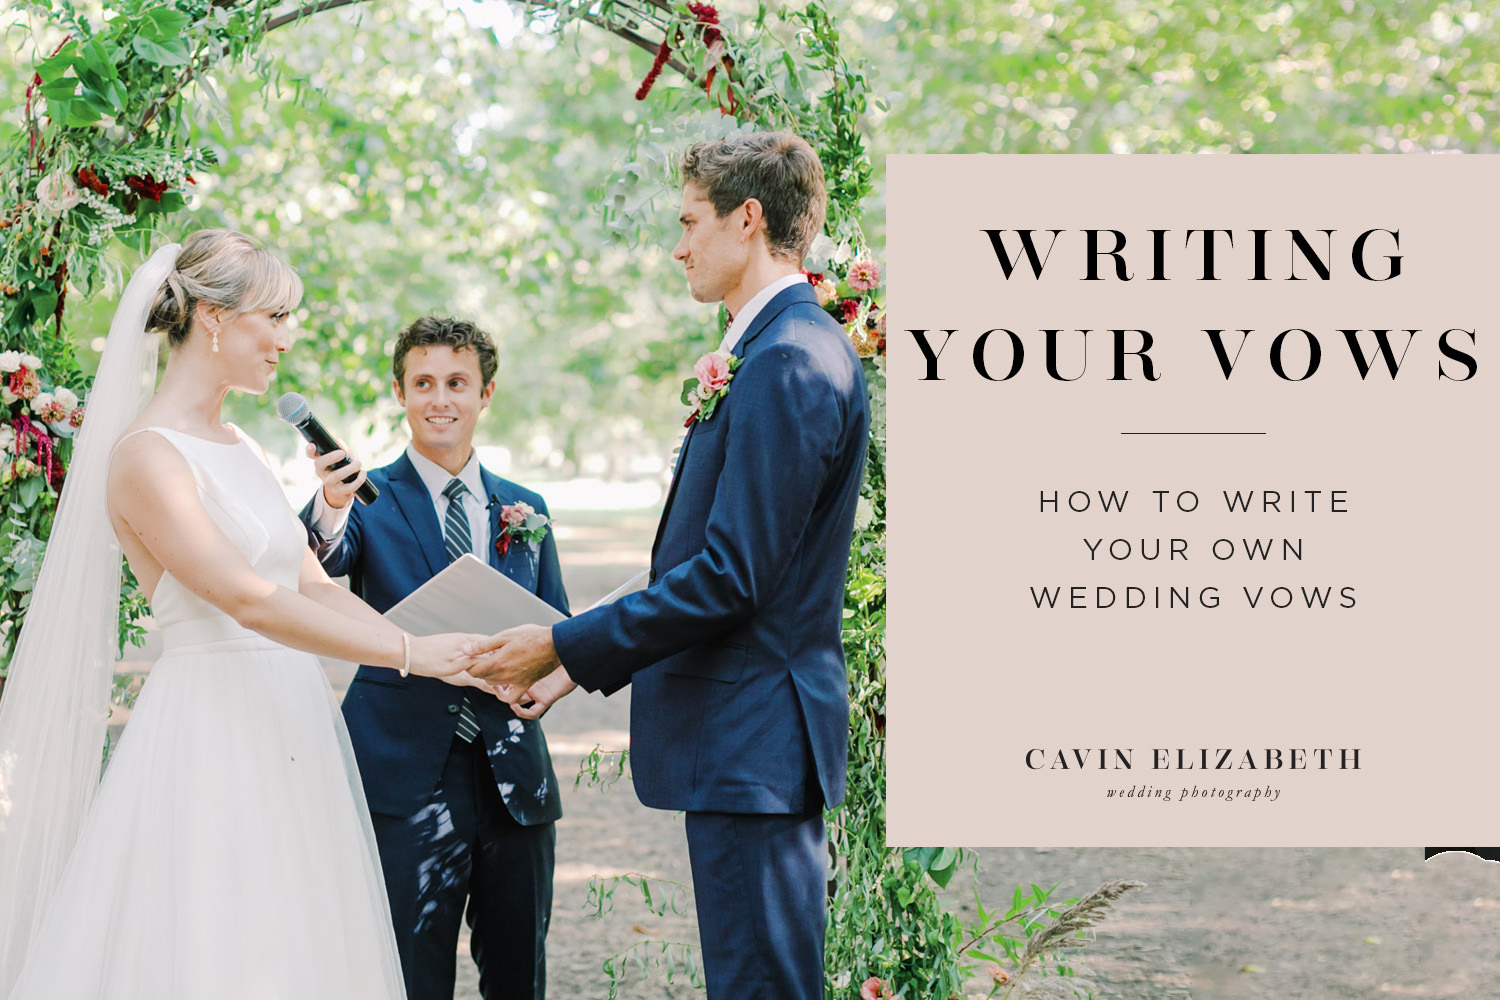 How to Write Your Own Wedding Vows by Beatrix Potter. Expert tips to help you personalize your wedding vows without stress!